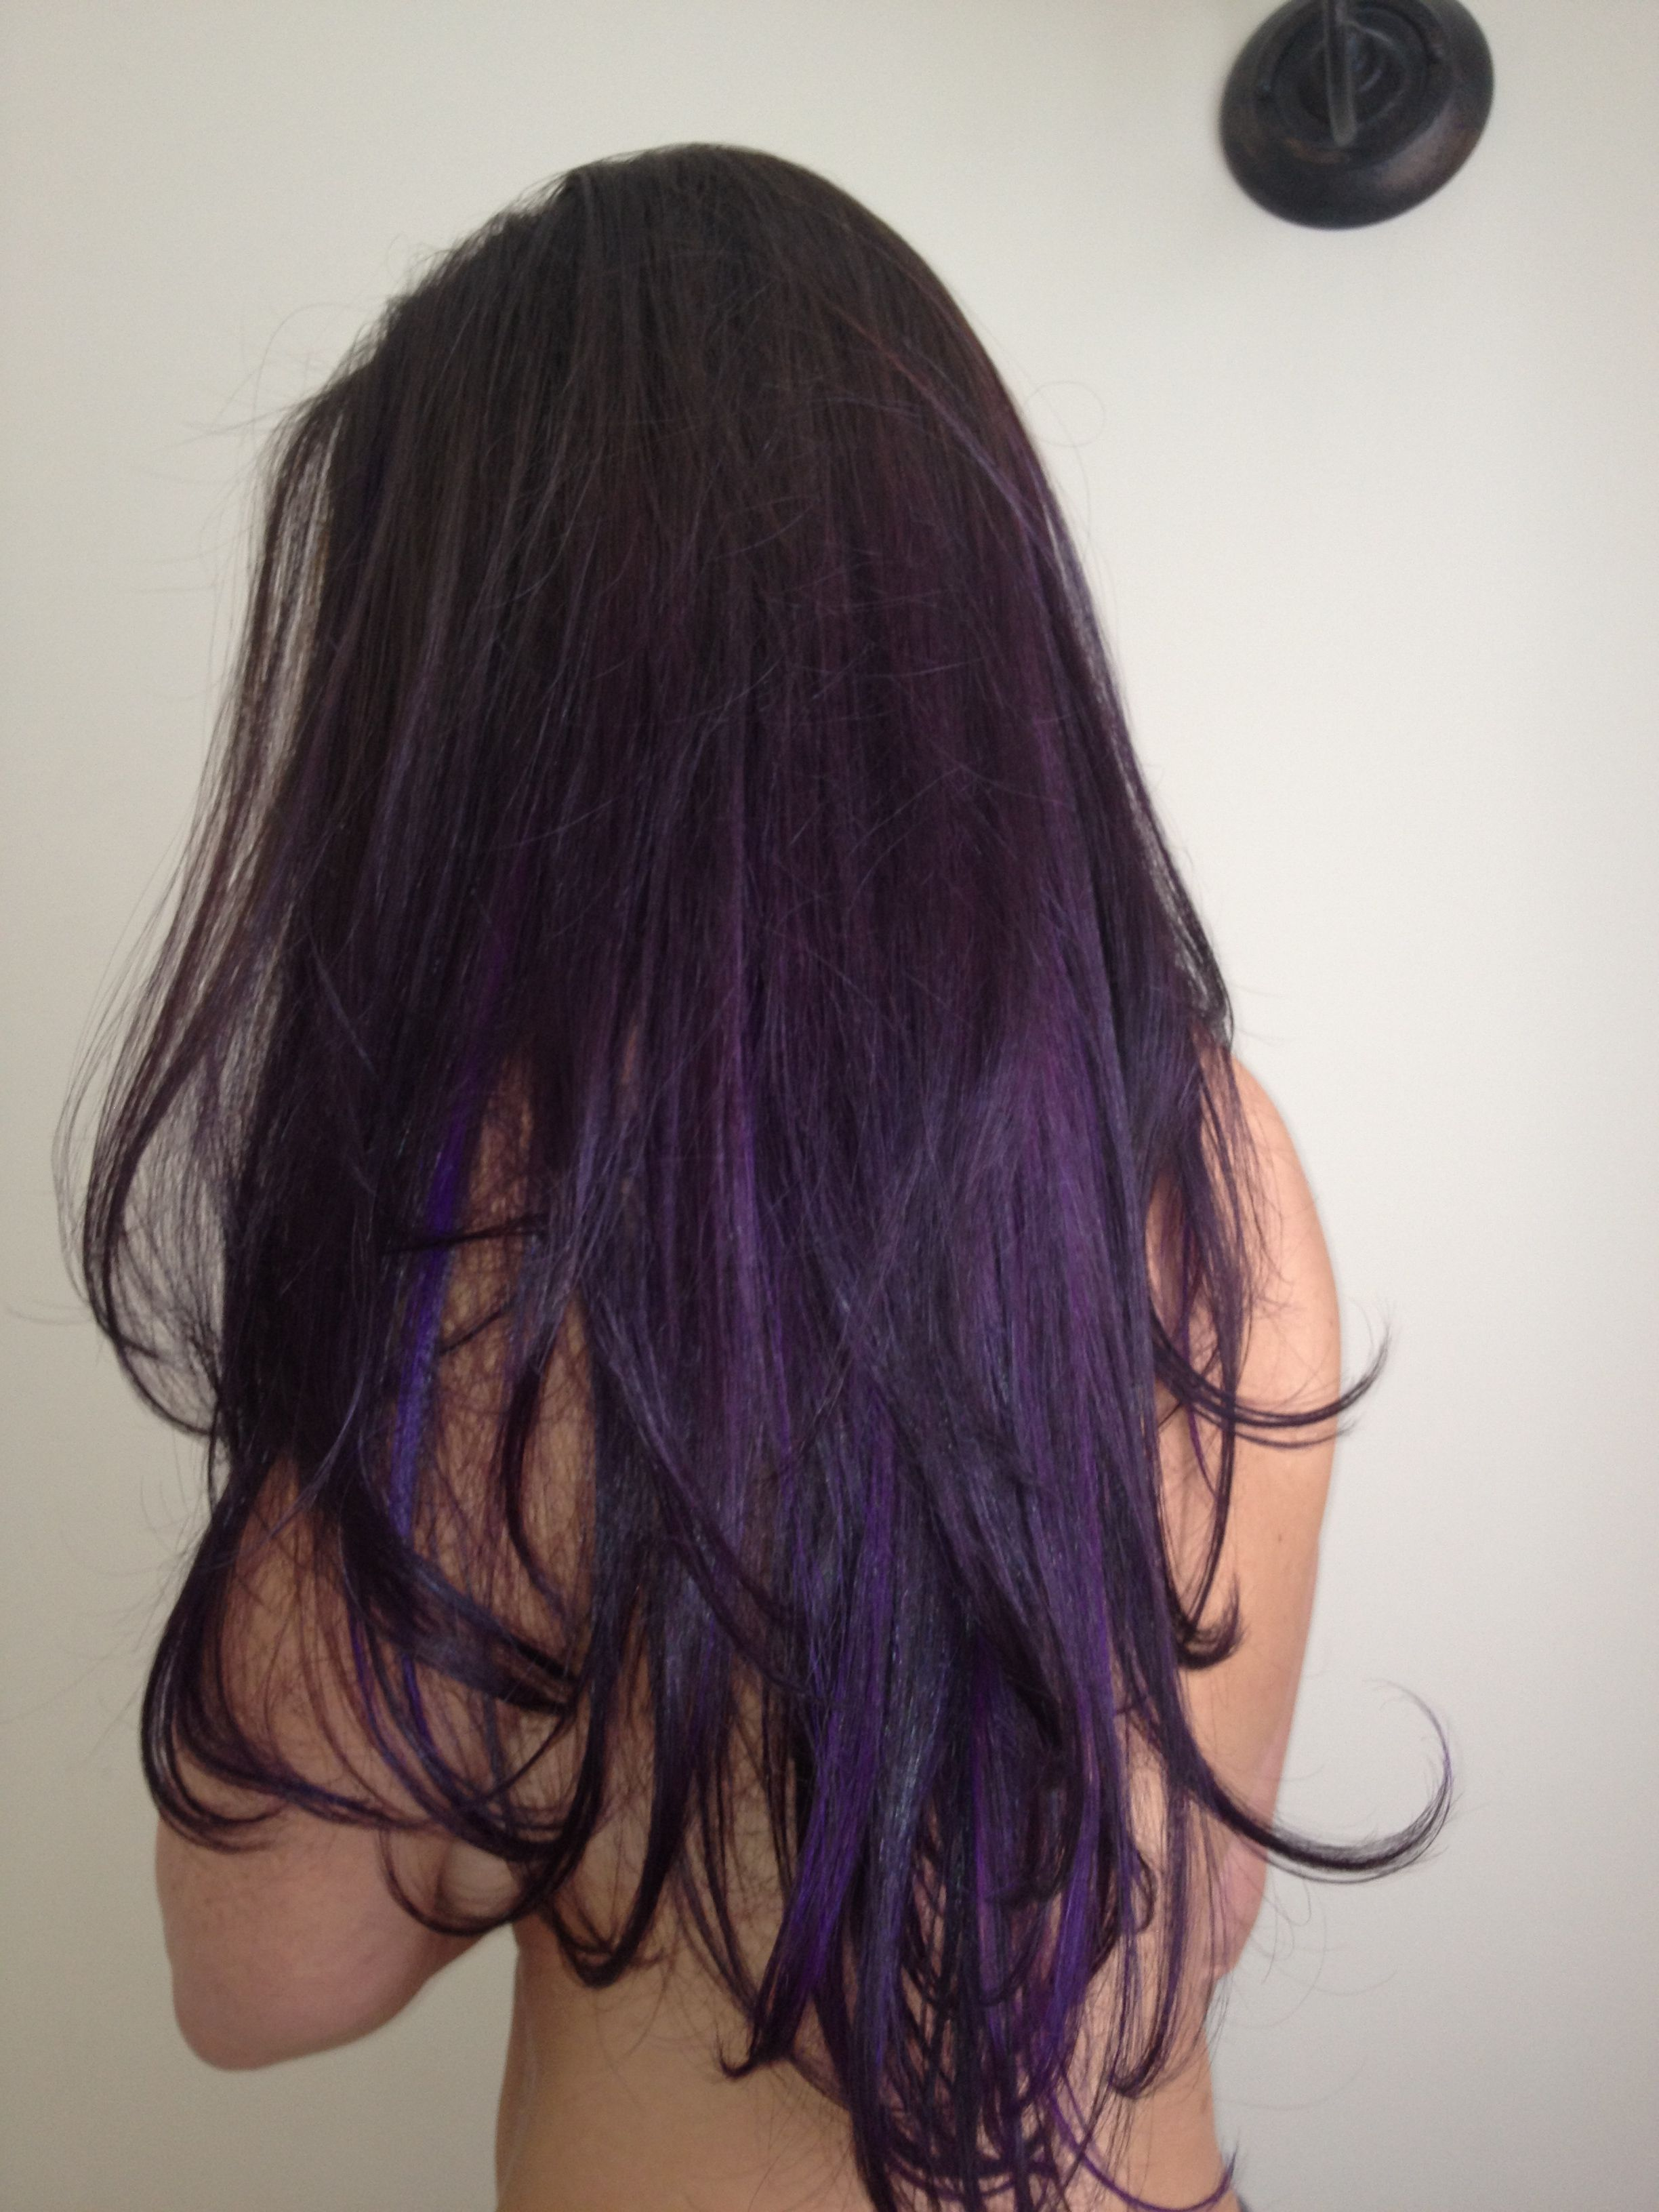 16 Glamorous Purple Hairstyles With Images Purple Ombre Hair